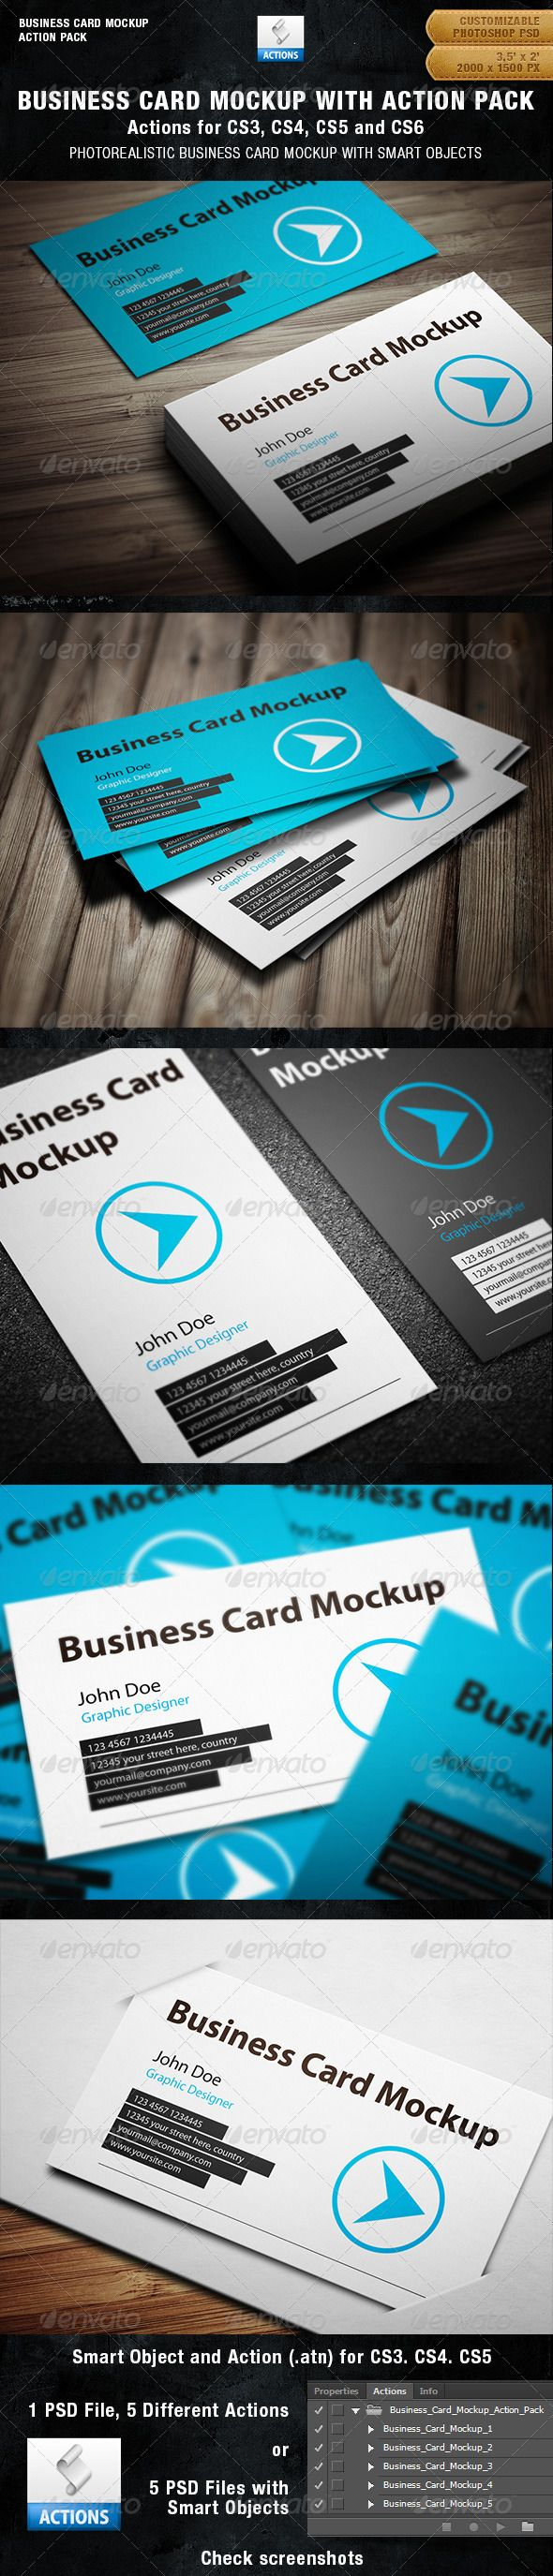 Business card mockup with actions pack pinterest mockup business card mockup with actions pack download here httpsgraphicriveritembusiness card mockup with actions pack1554763refklitvogli reheart